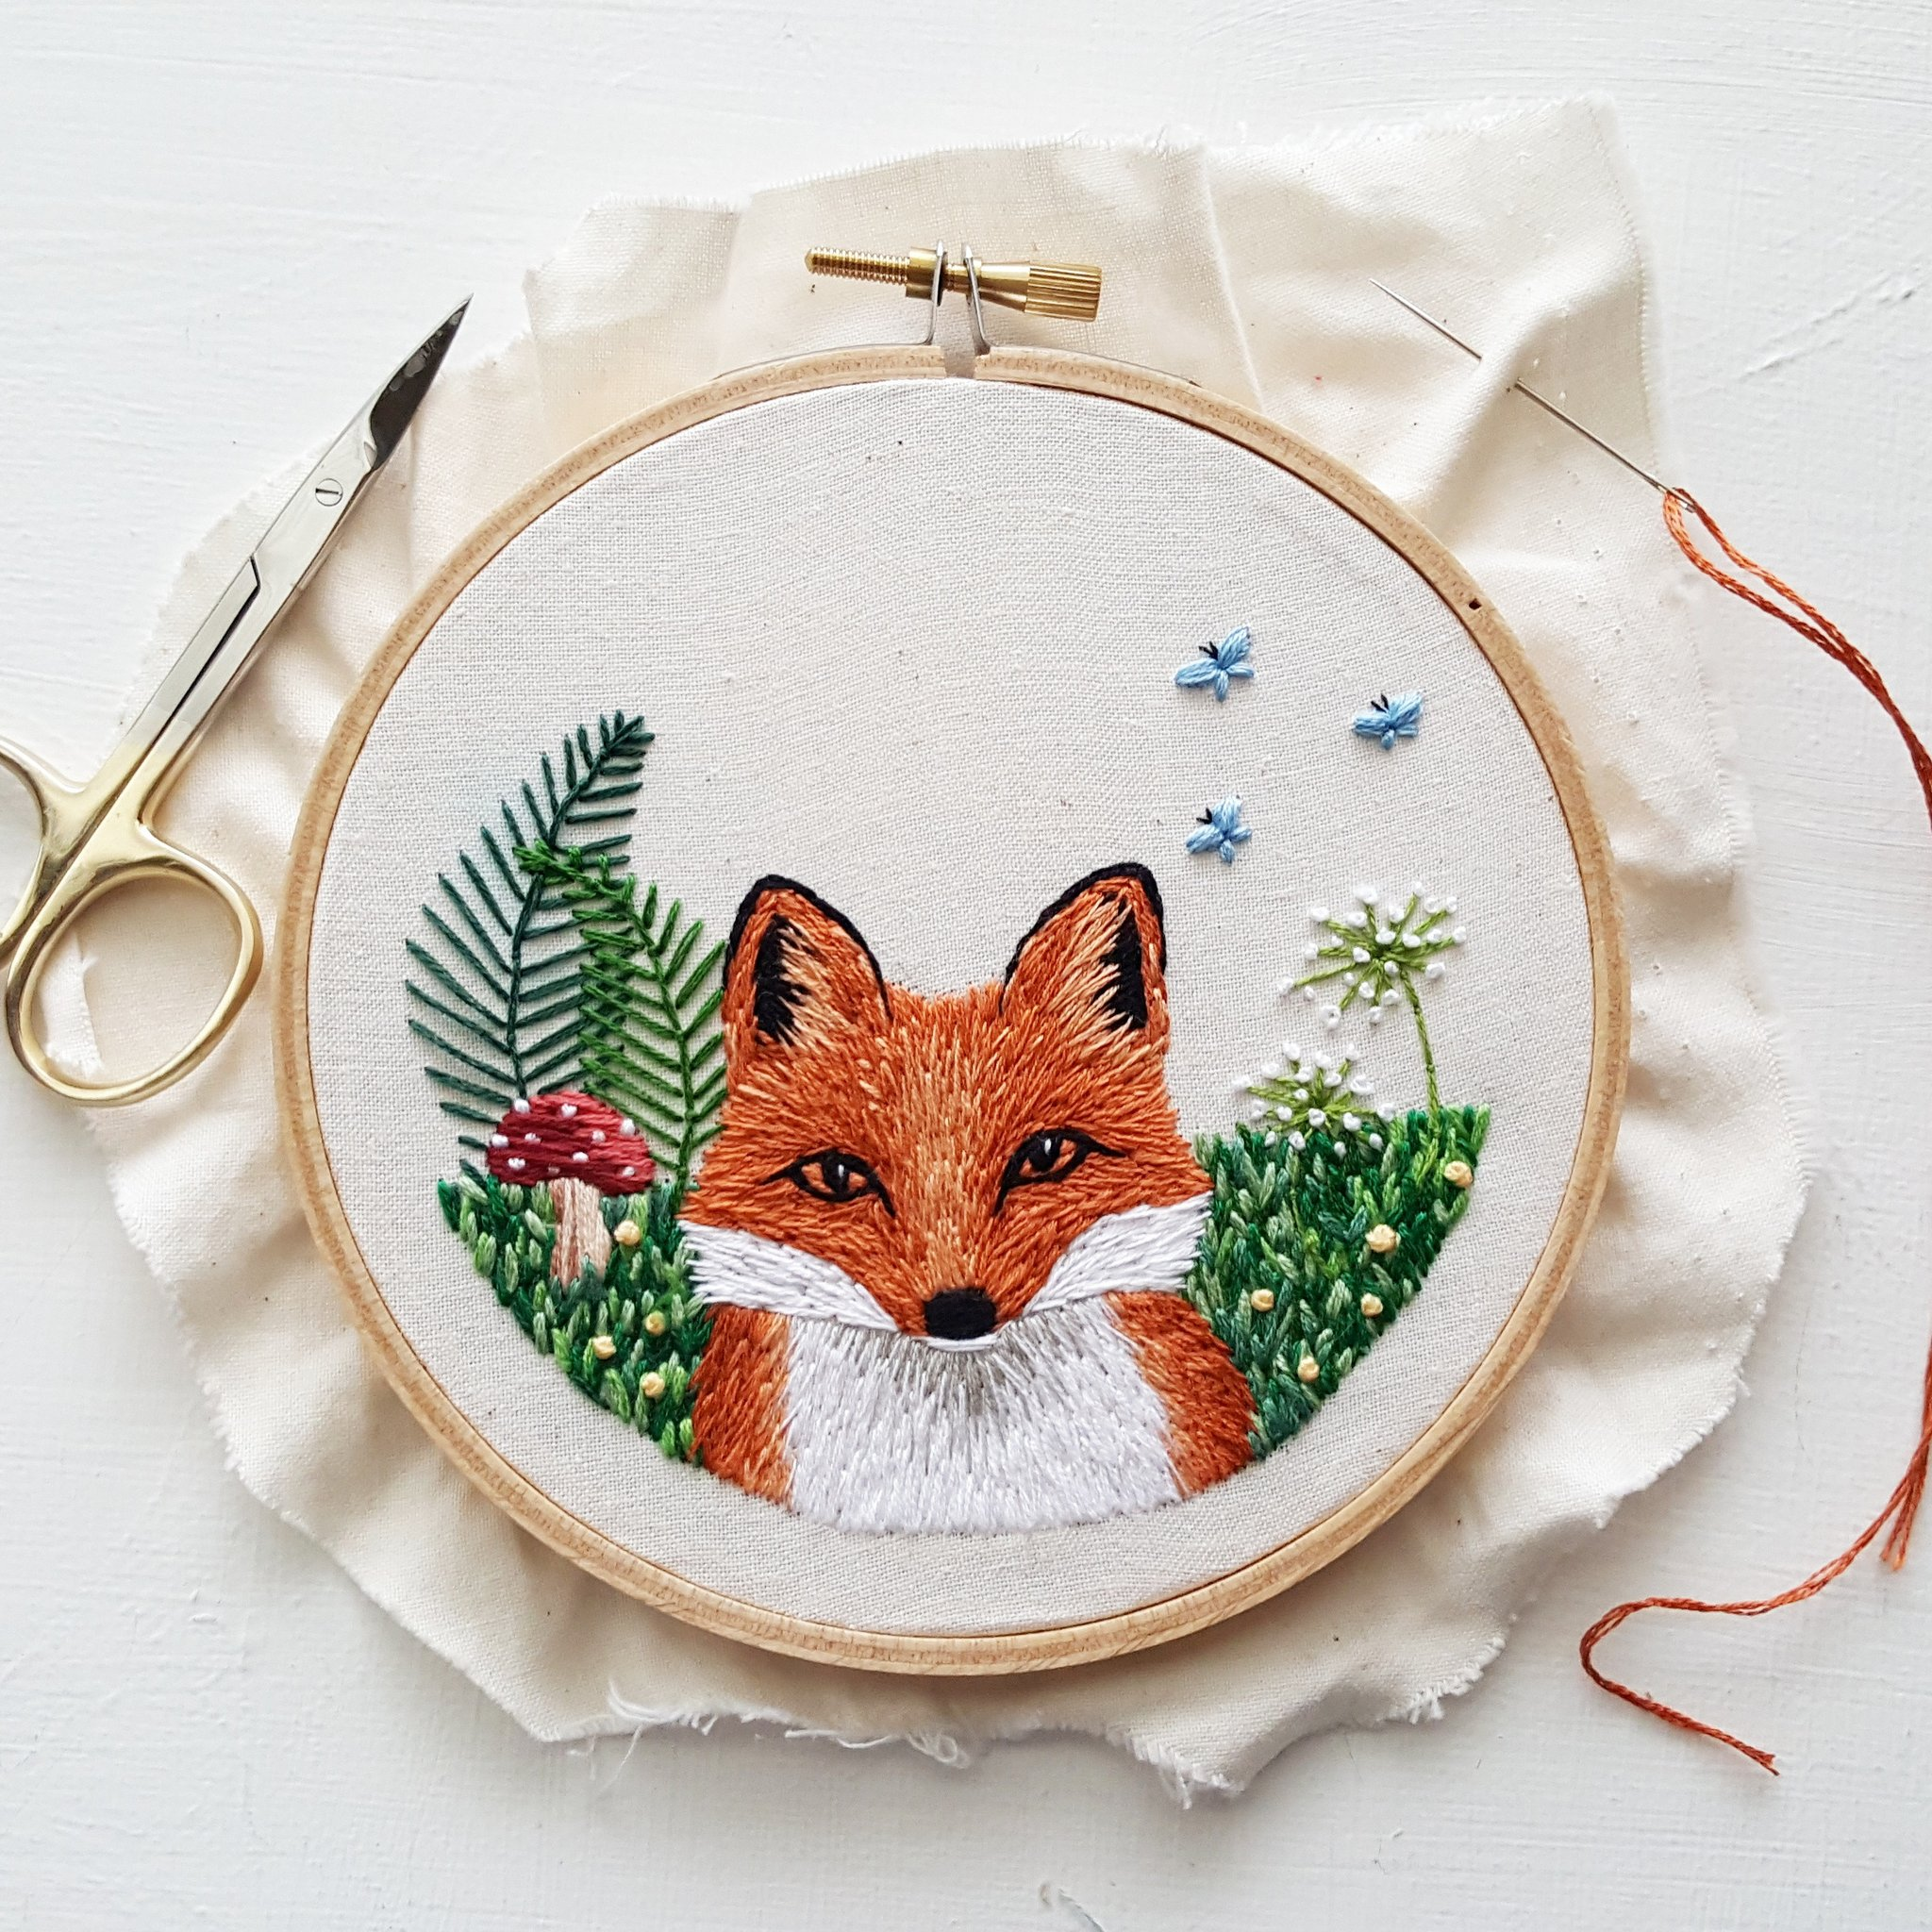 Embroidered fox with green background in embroidery hoop